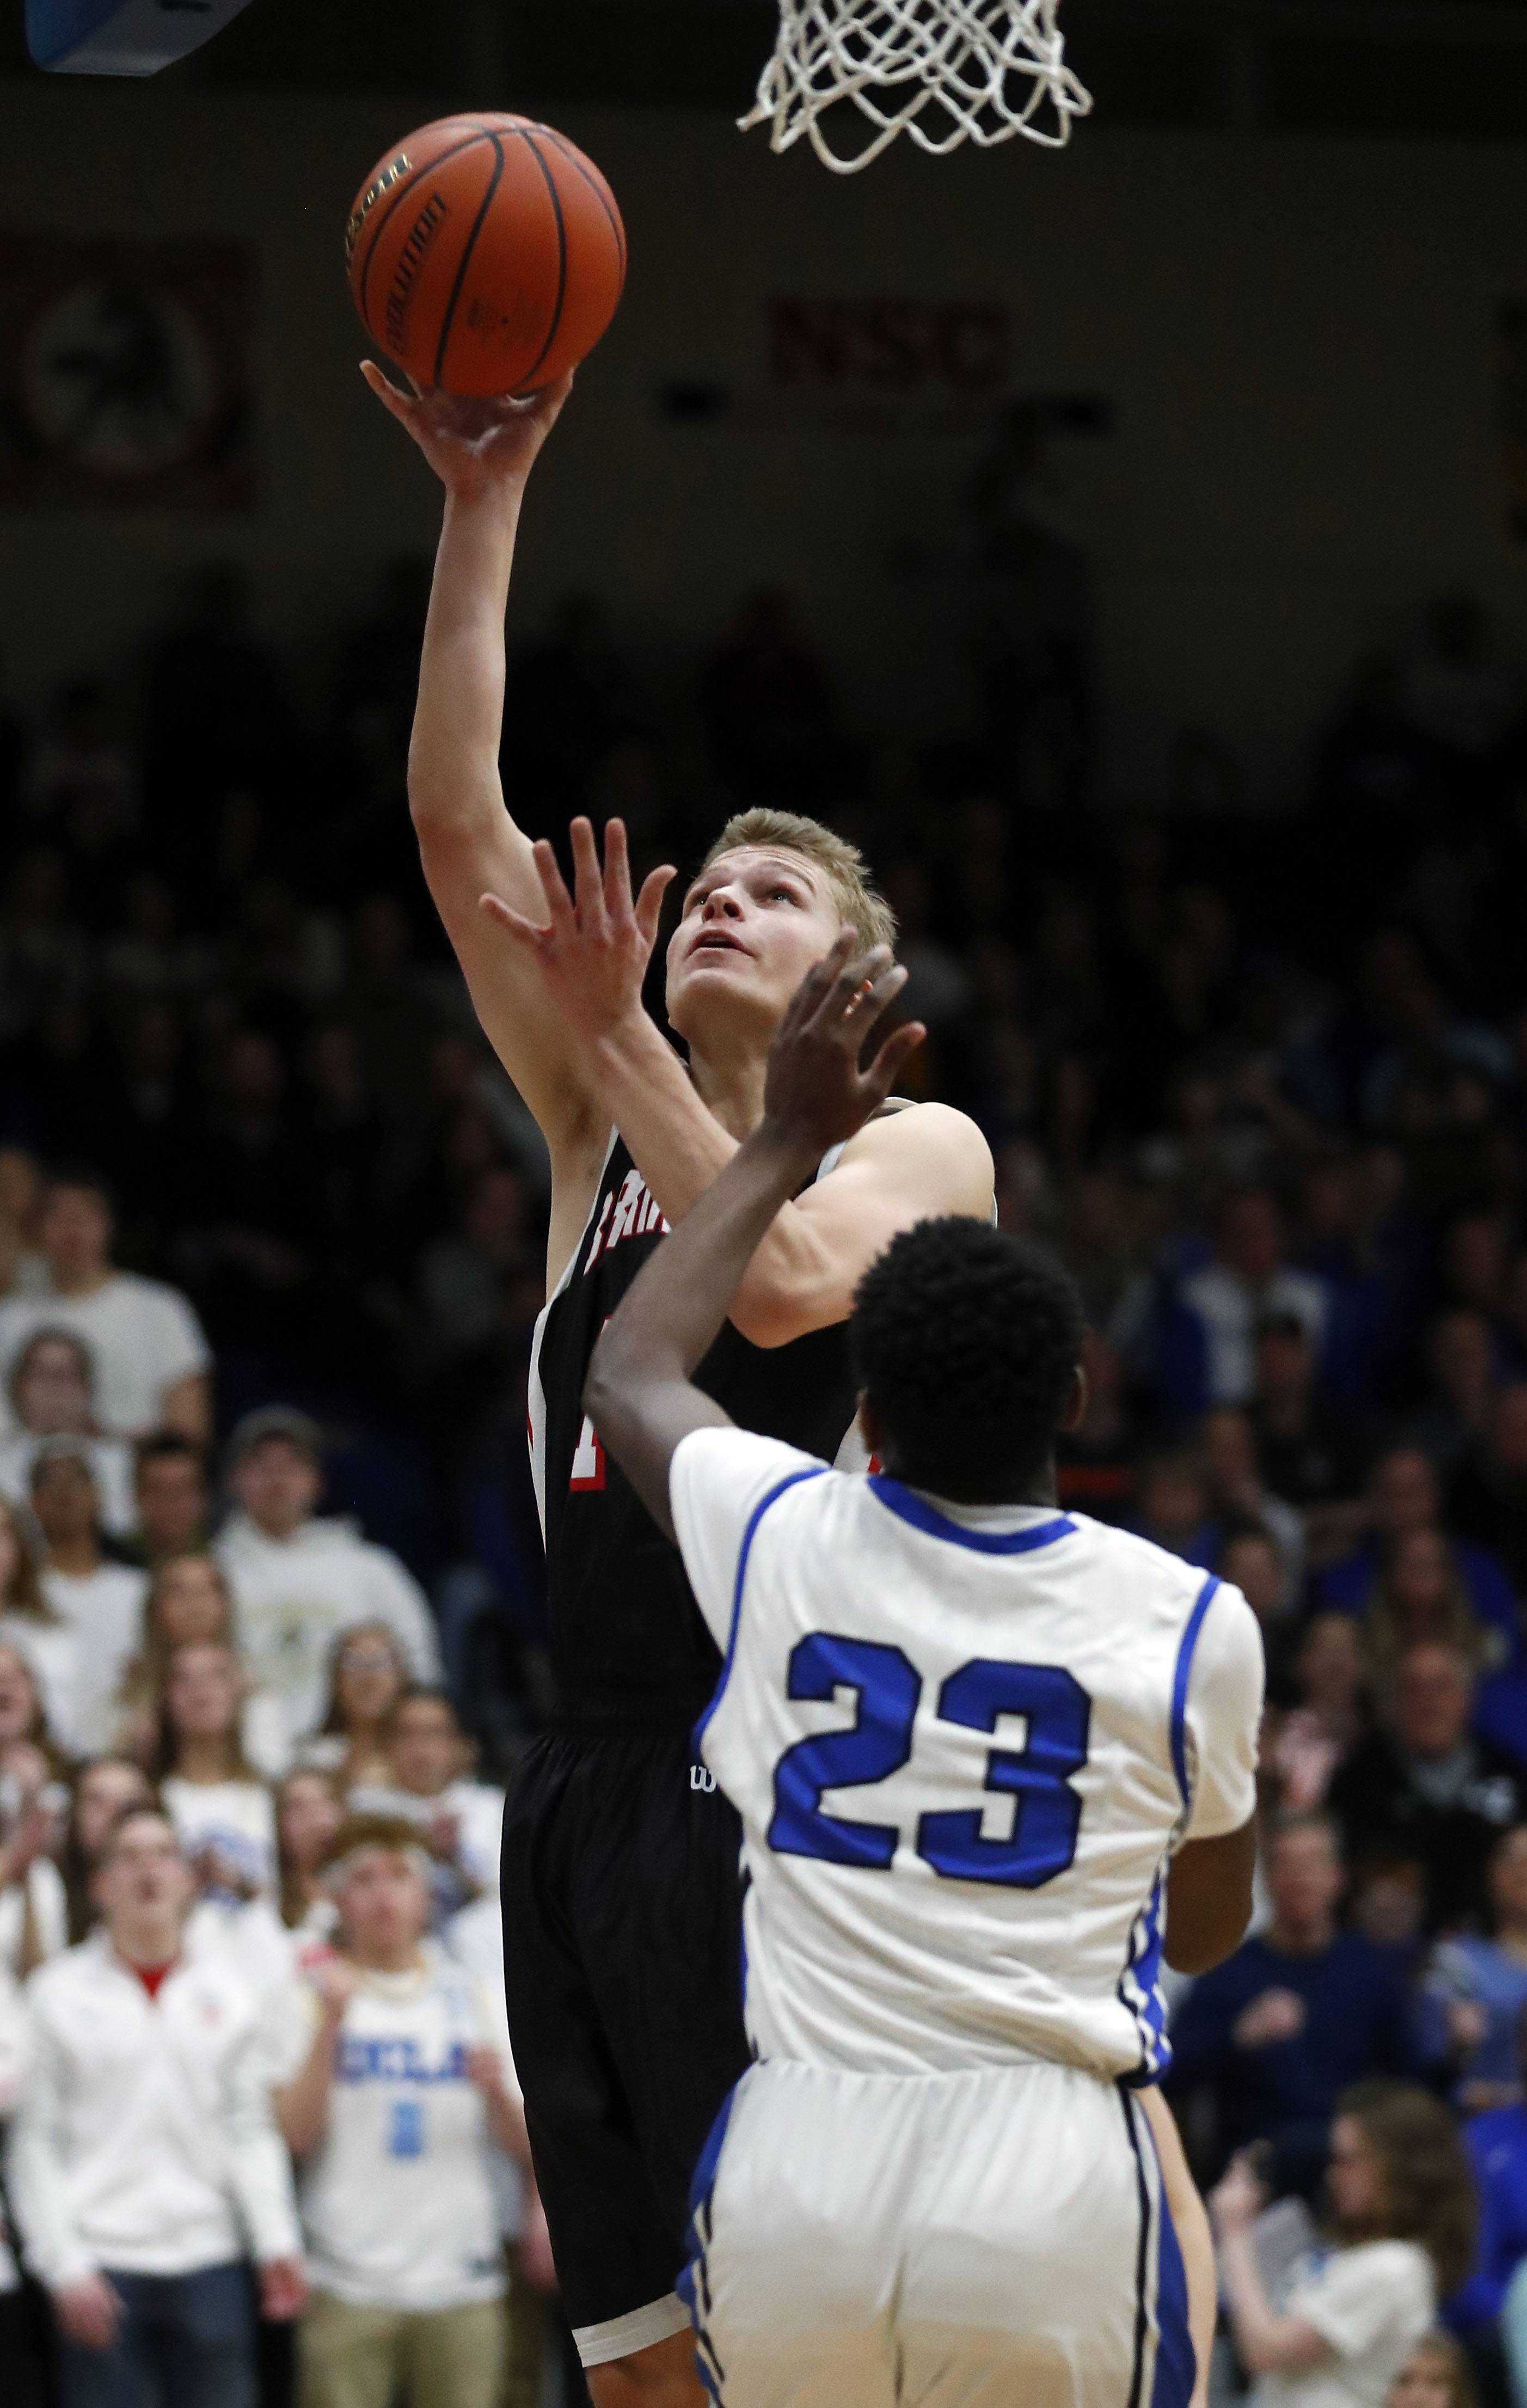 Barrington's Justin Alperin shoots over Lake Zurich's Kenny Haynes during the Class 4A sectional final at Lake Zurich on Friday.